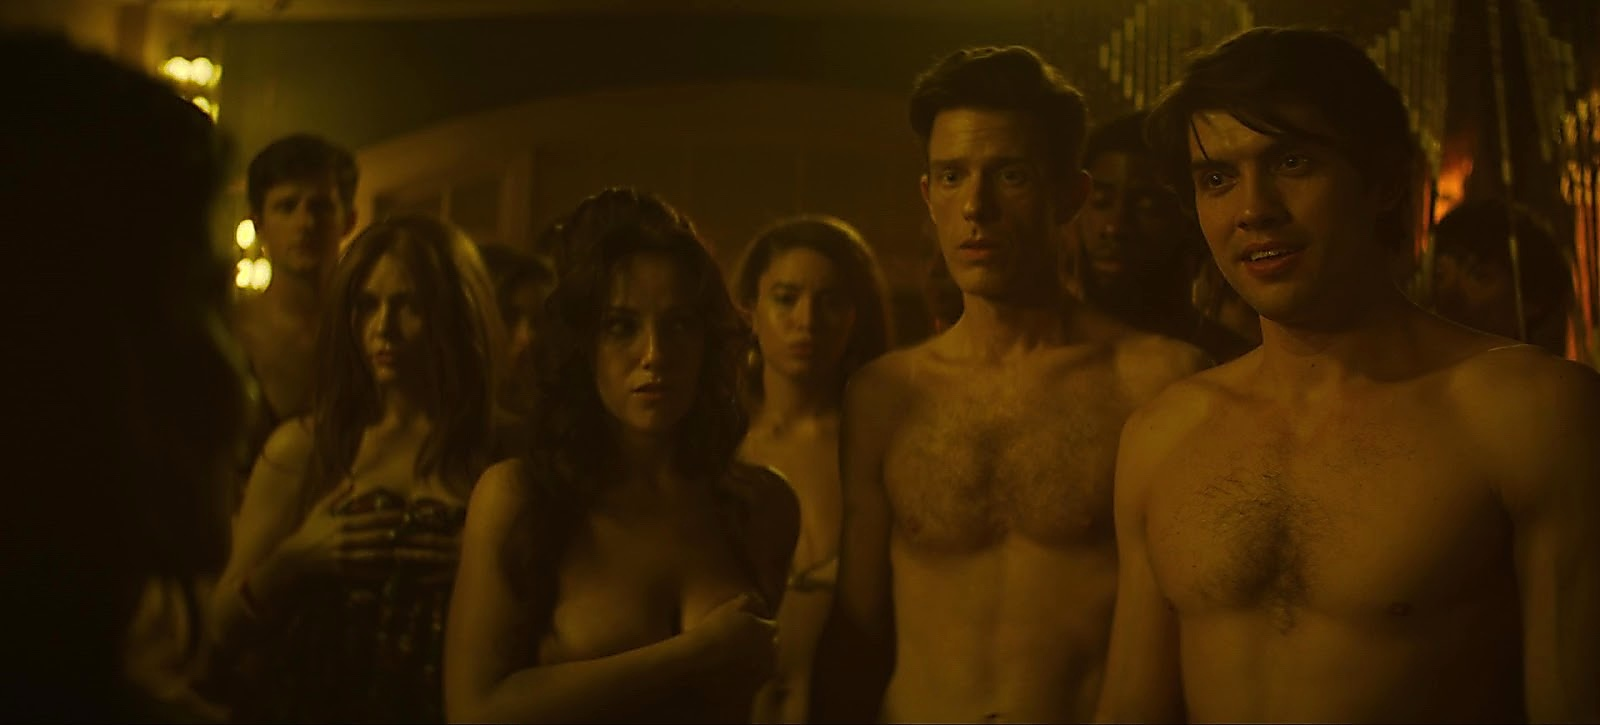 Carter Jenkins sexy shirtless scene August 7, 2020, 3pm